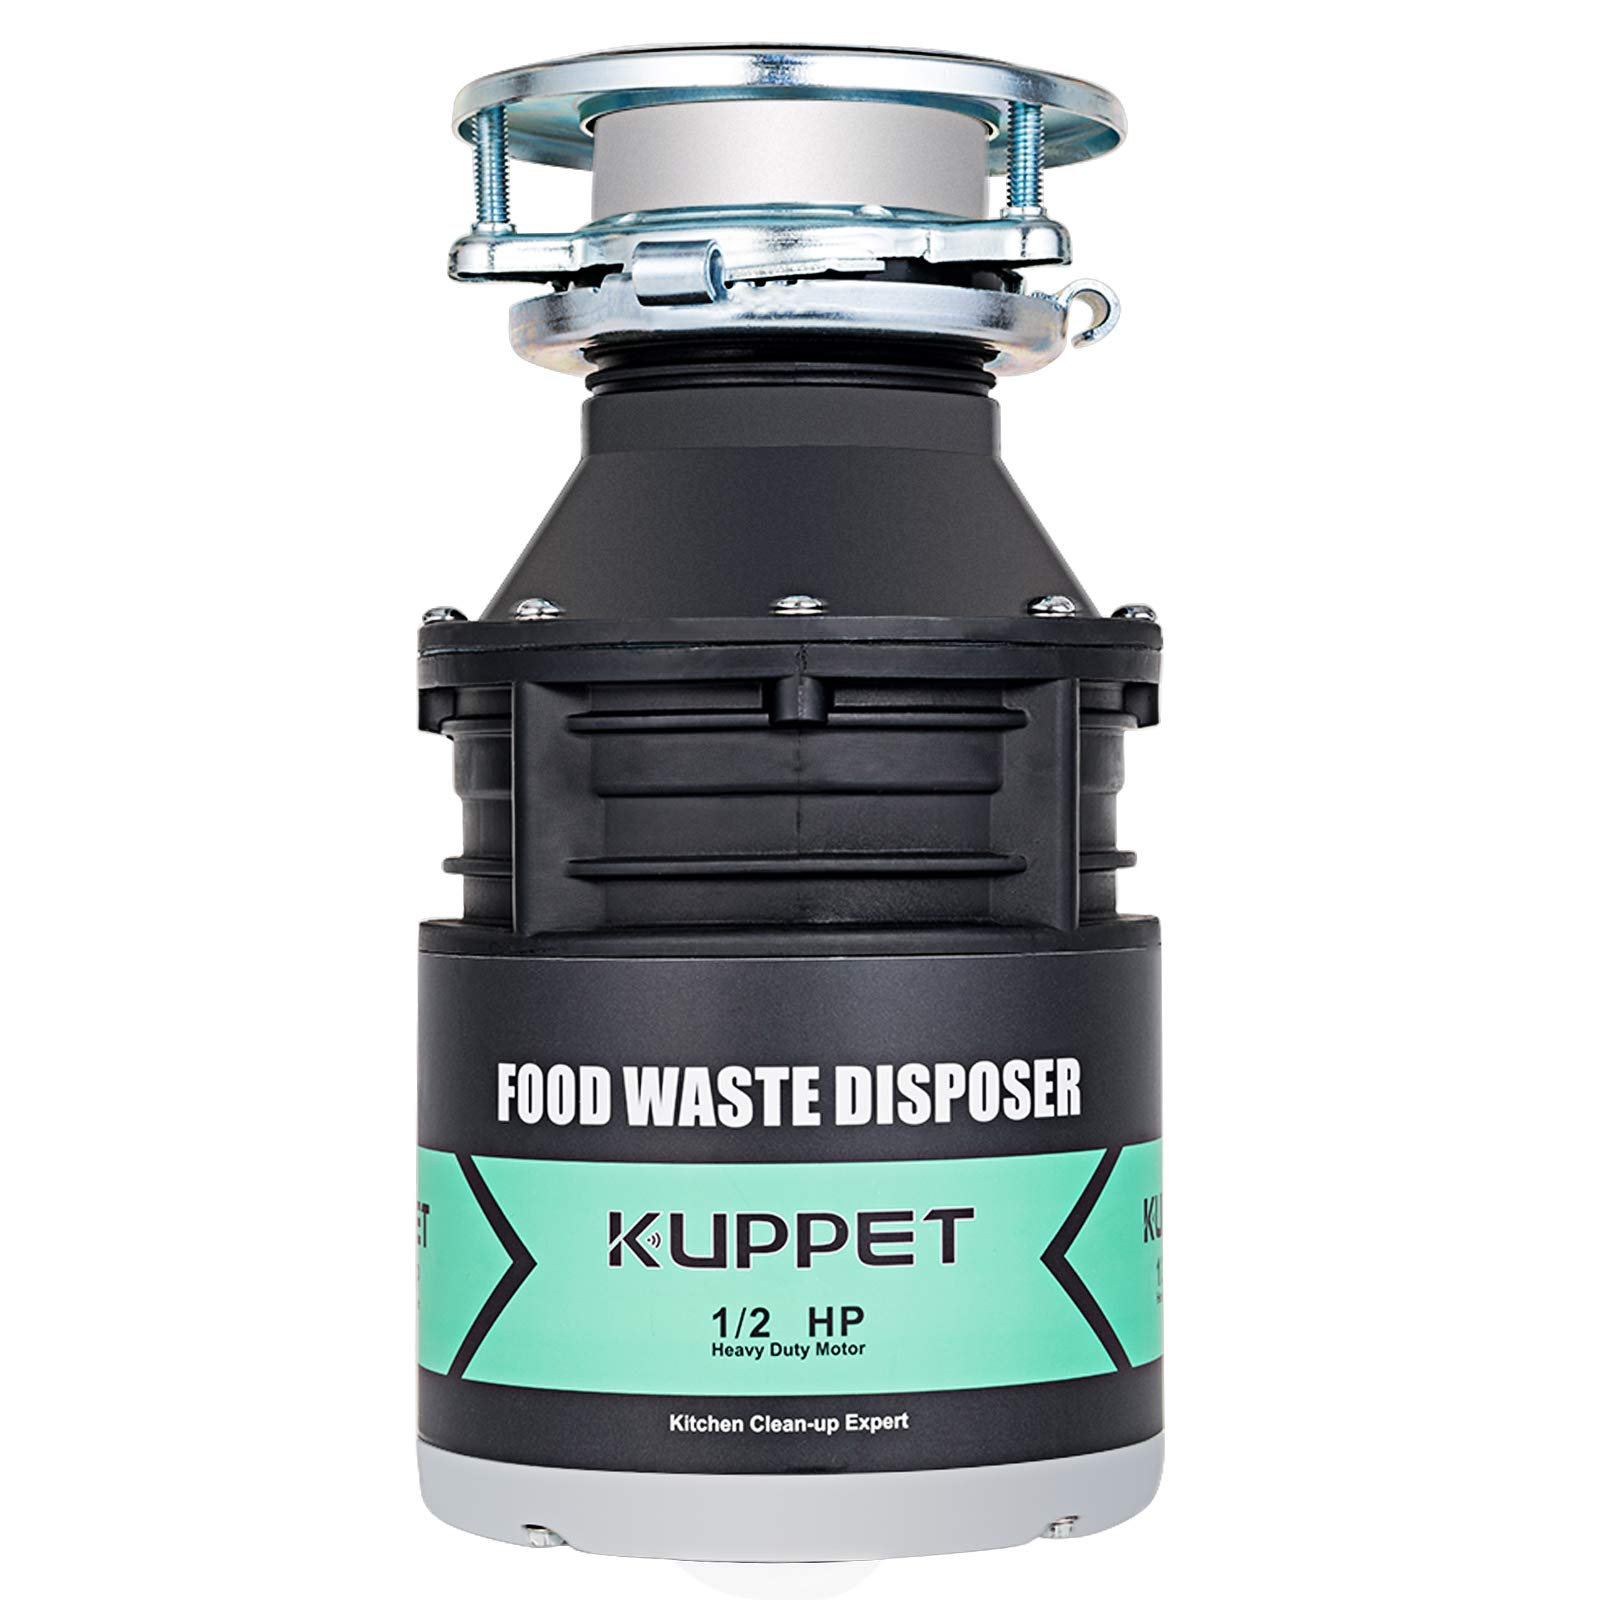 Garbage Disposals KUPPET 1/2 HP Food Waste Disposer with Power Cord 1700 RPM Continuous Feed Super Quiet&Easy to Install 34 OZ. Capacity Stainless Steel